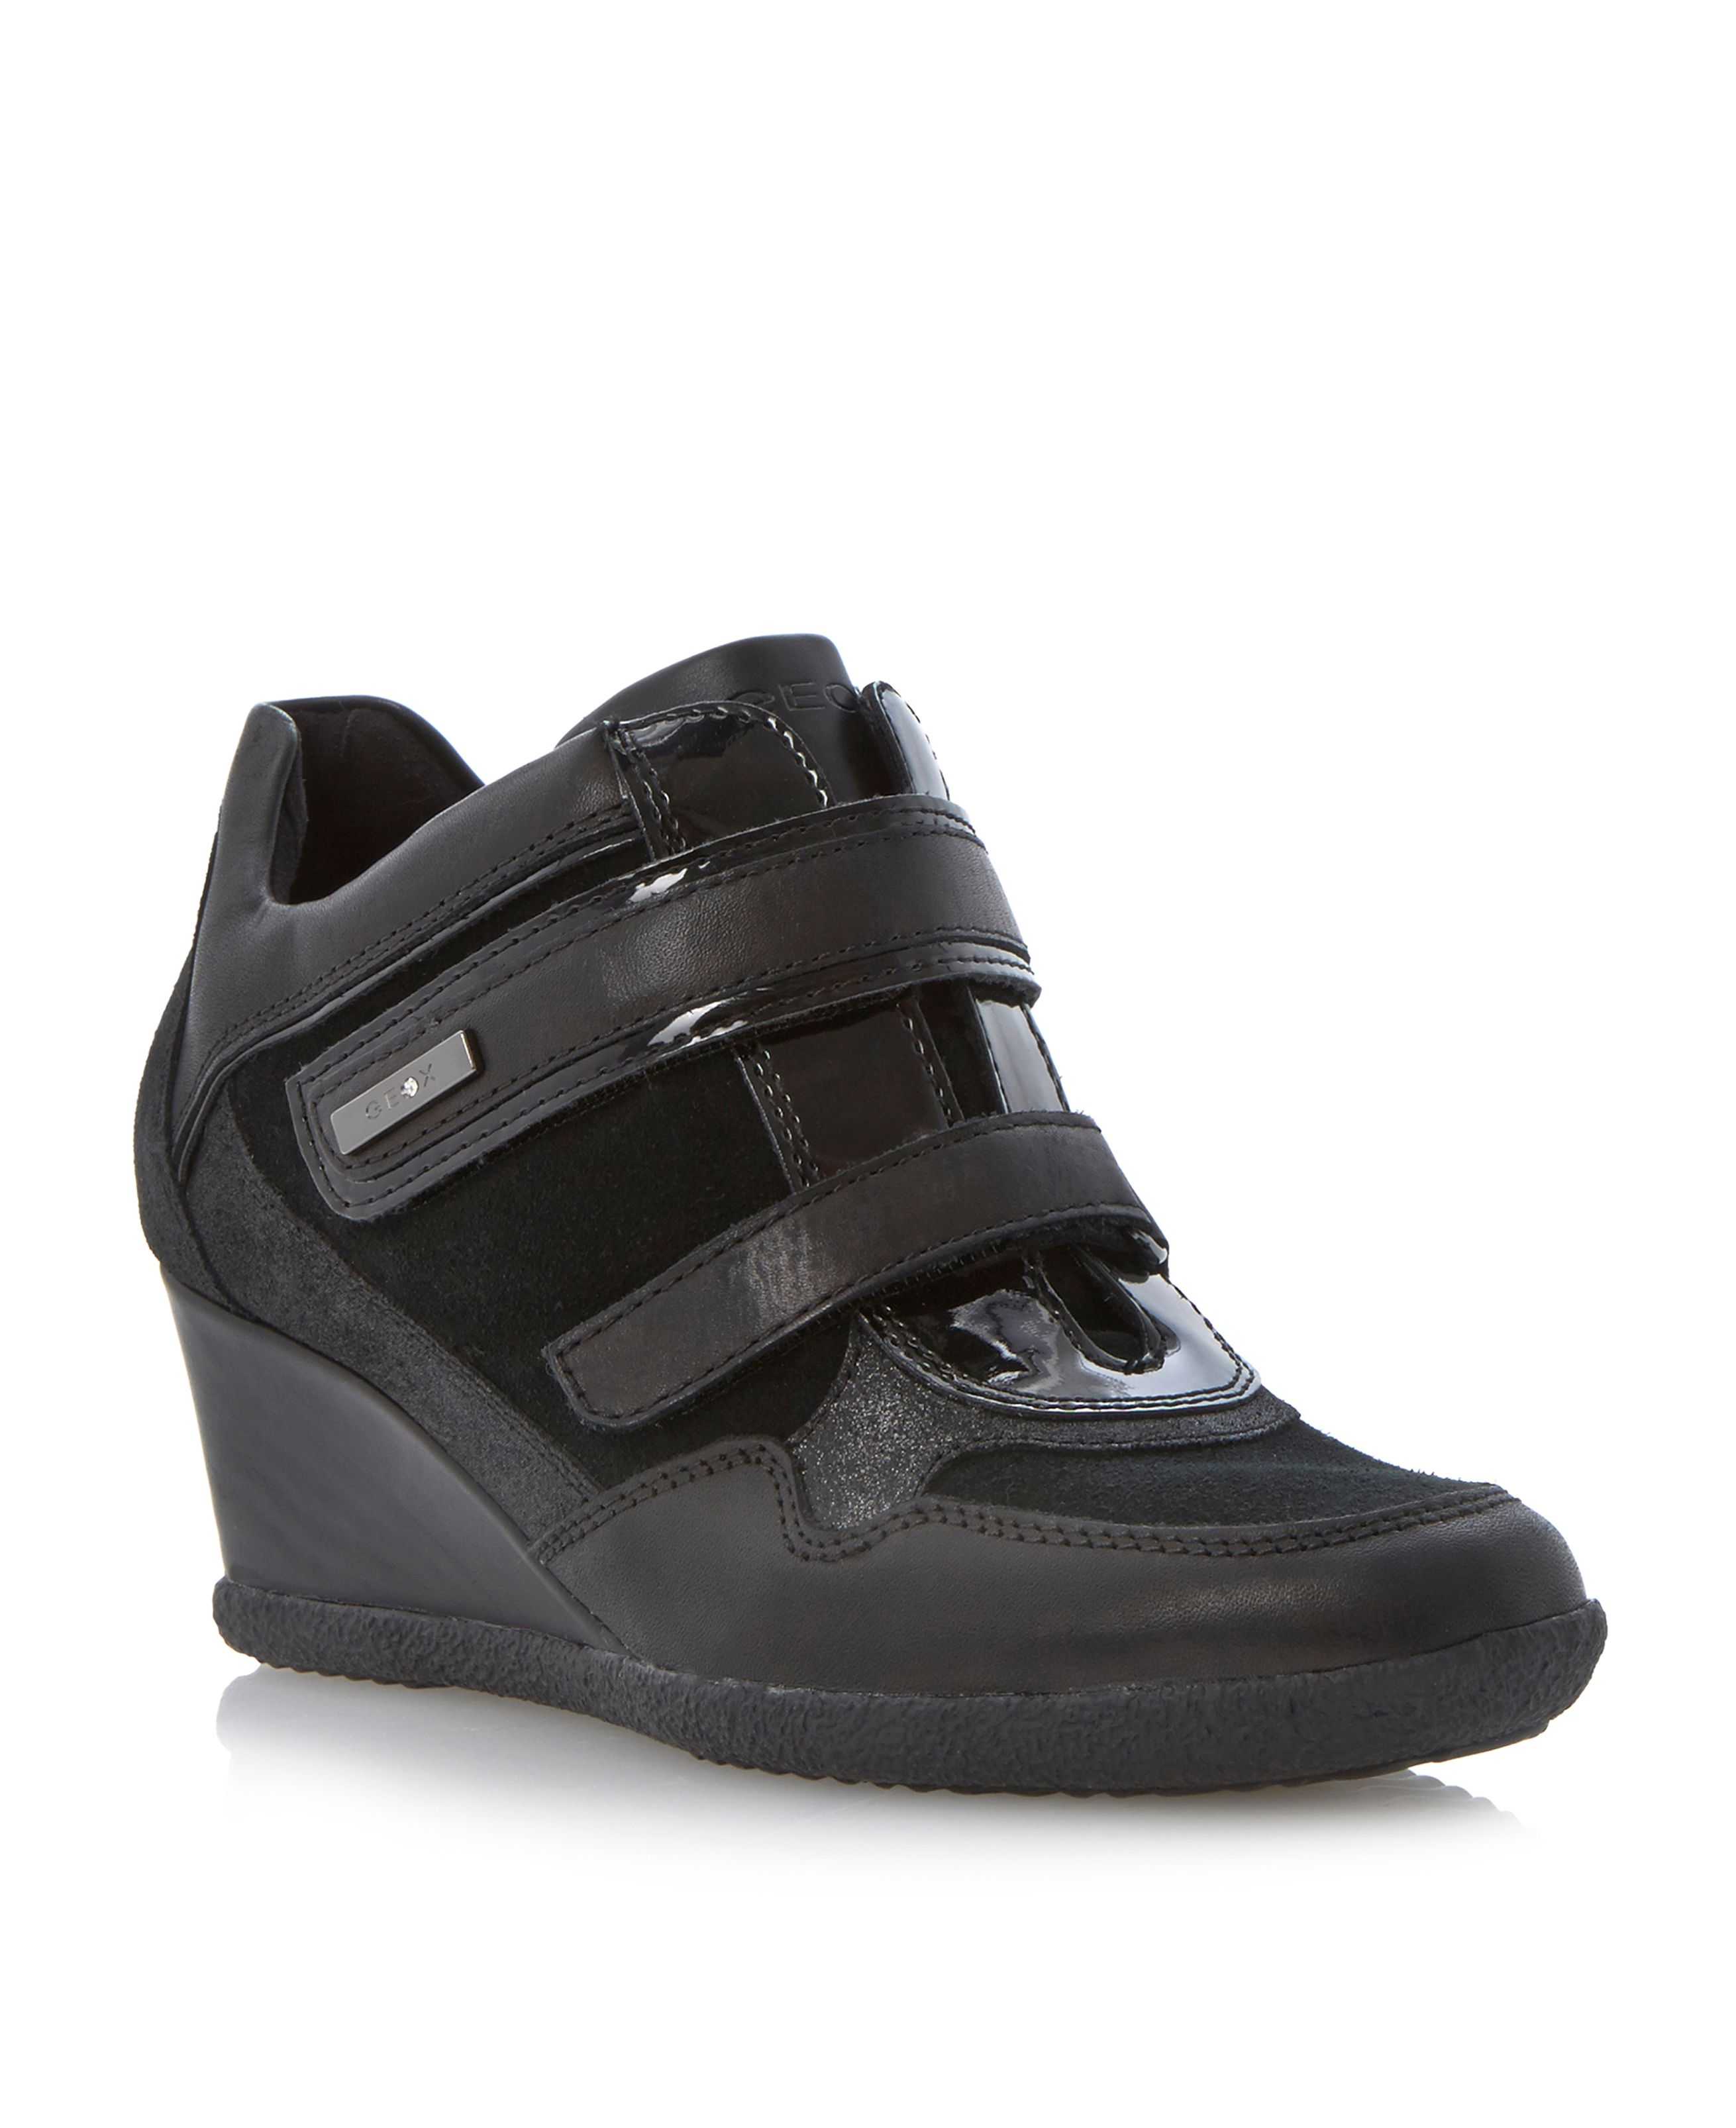 Amelia velcro sporty wedges